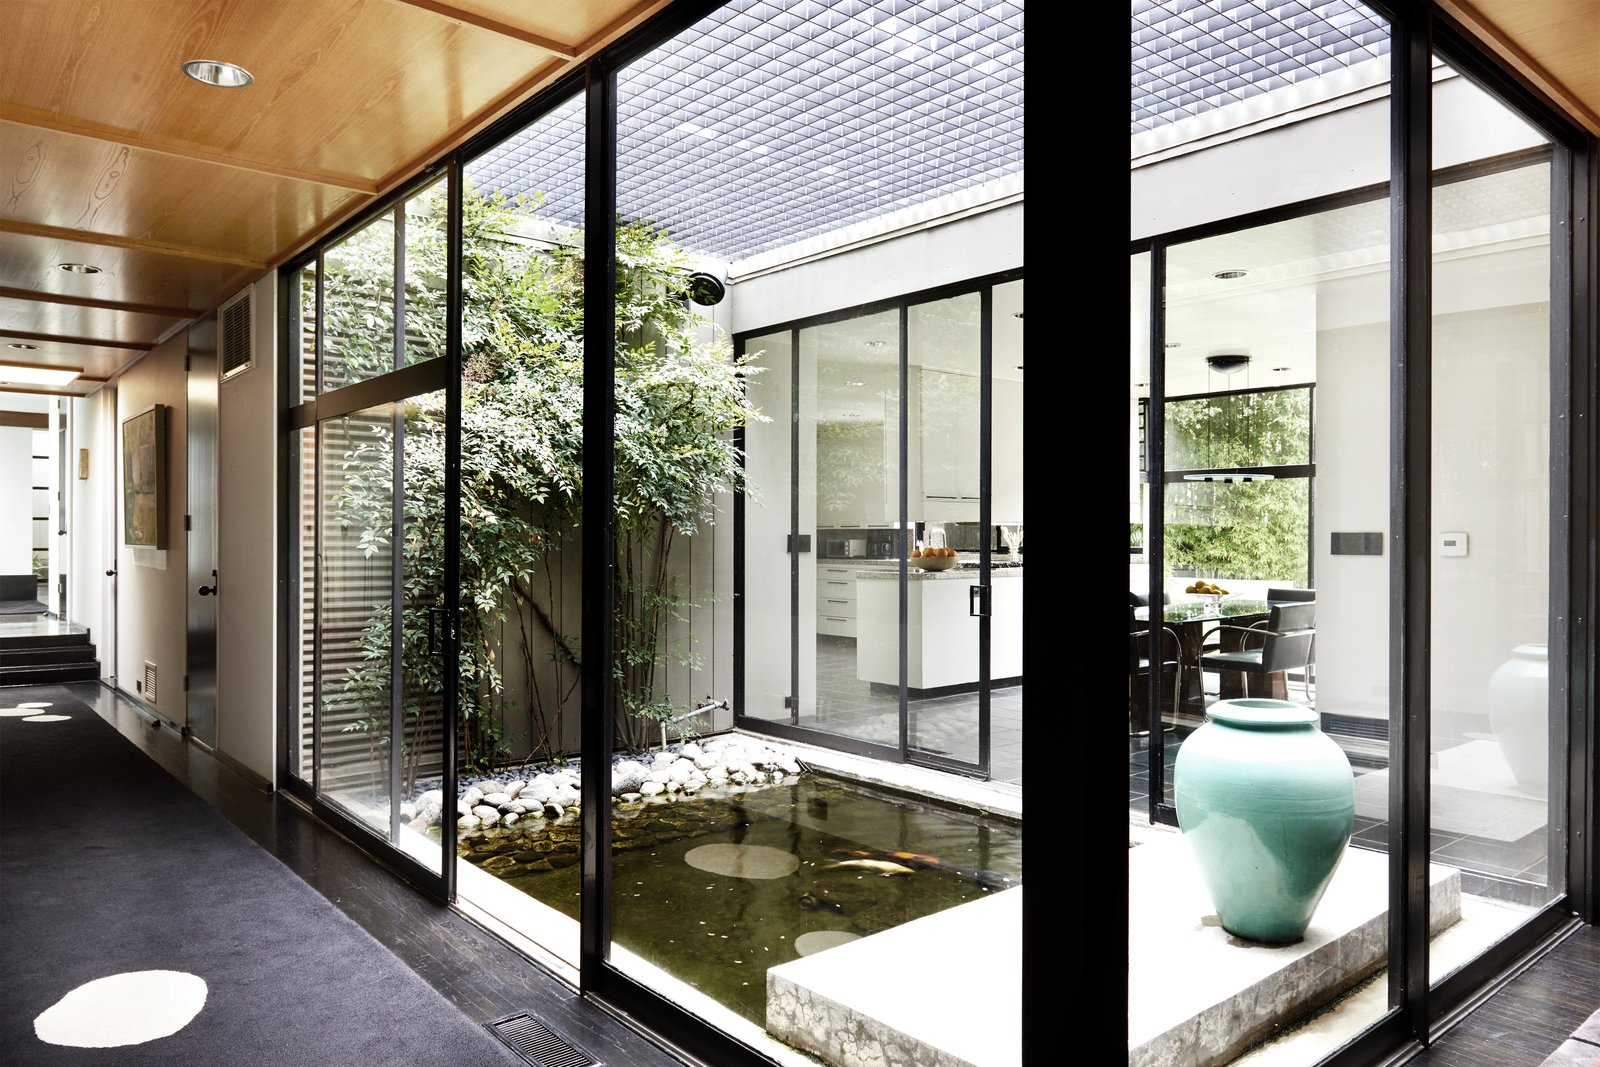 Interior courtyard with a pond.